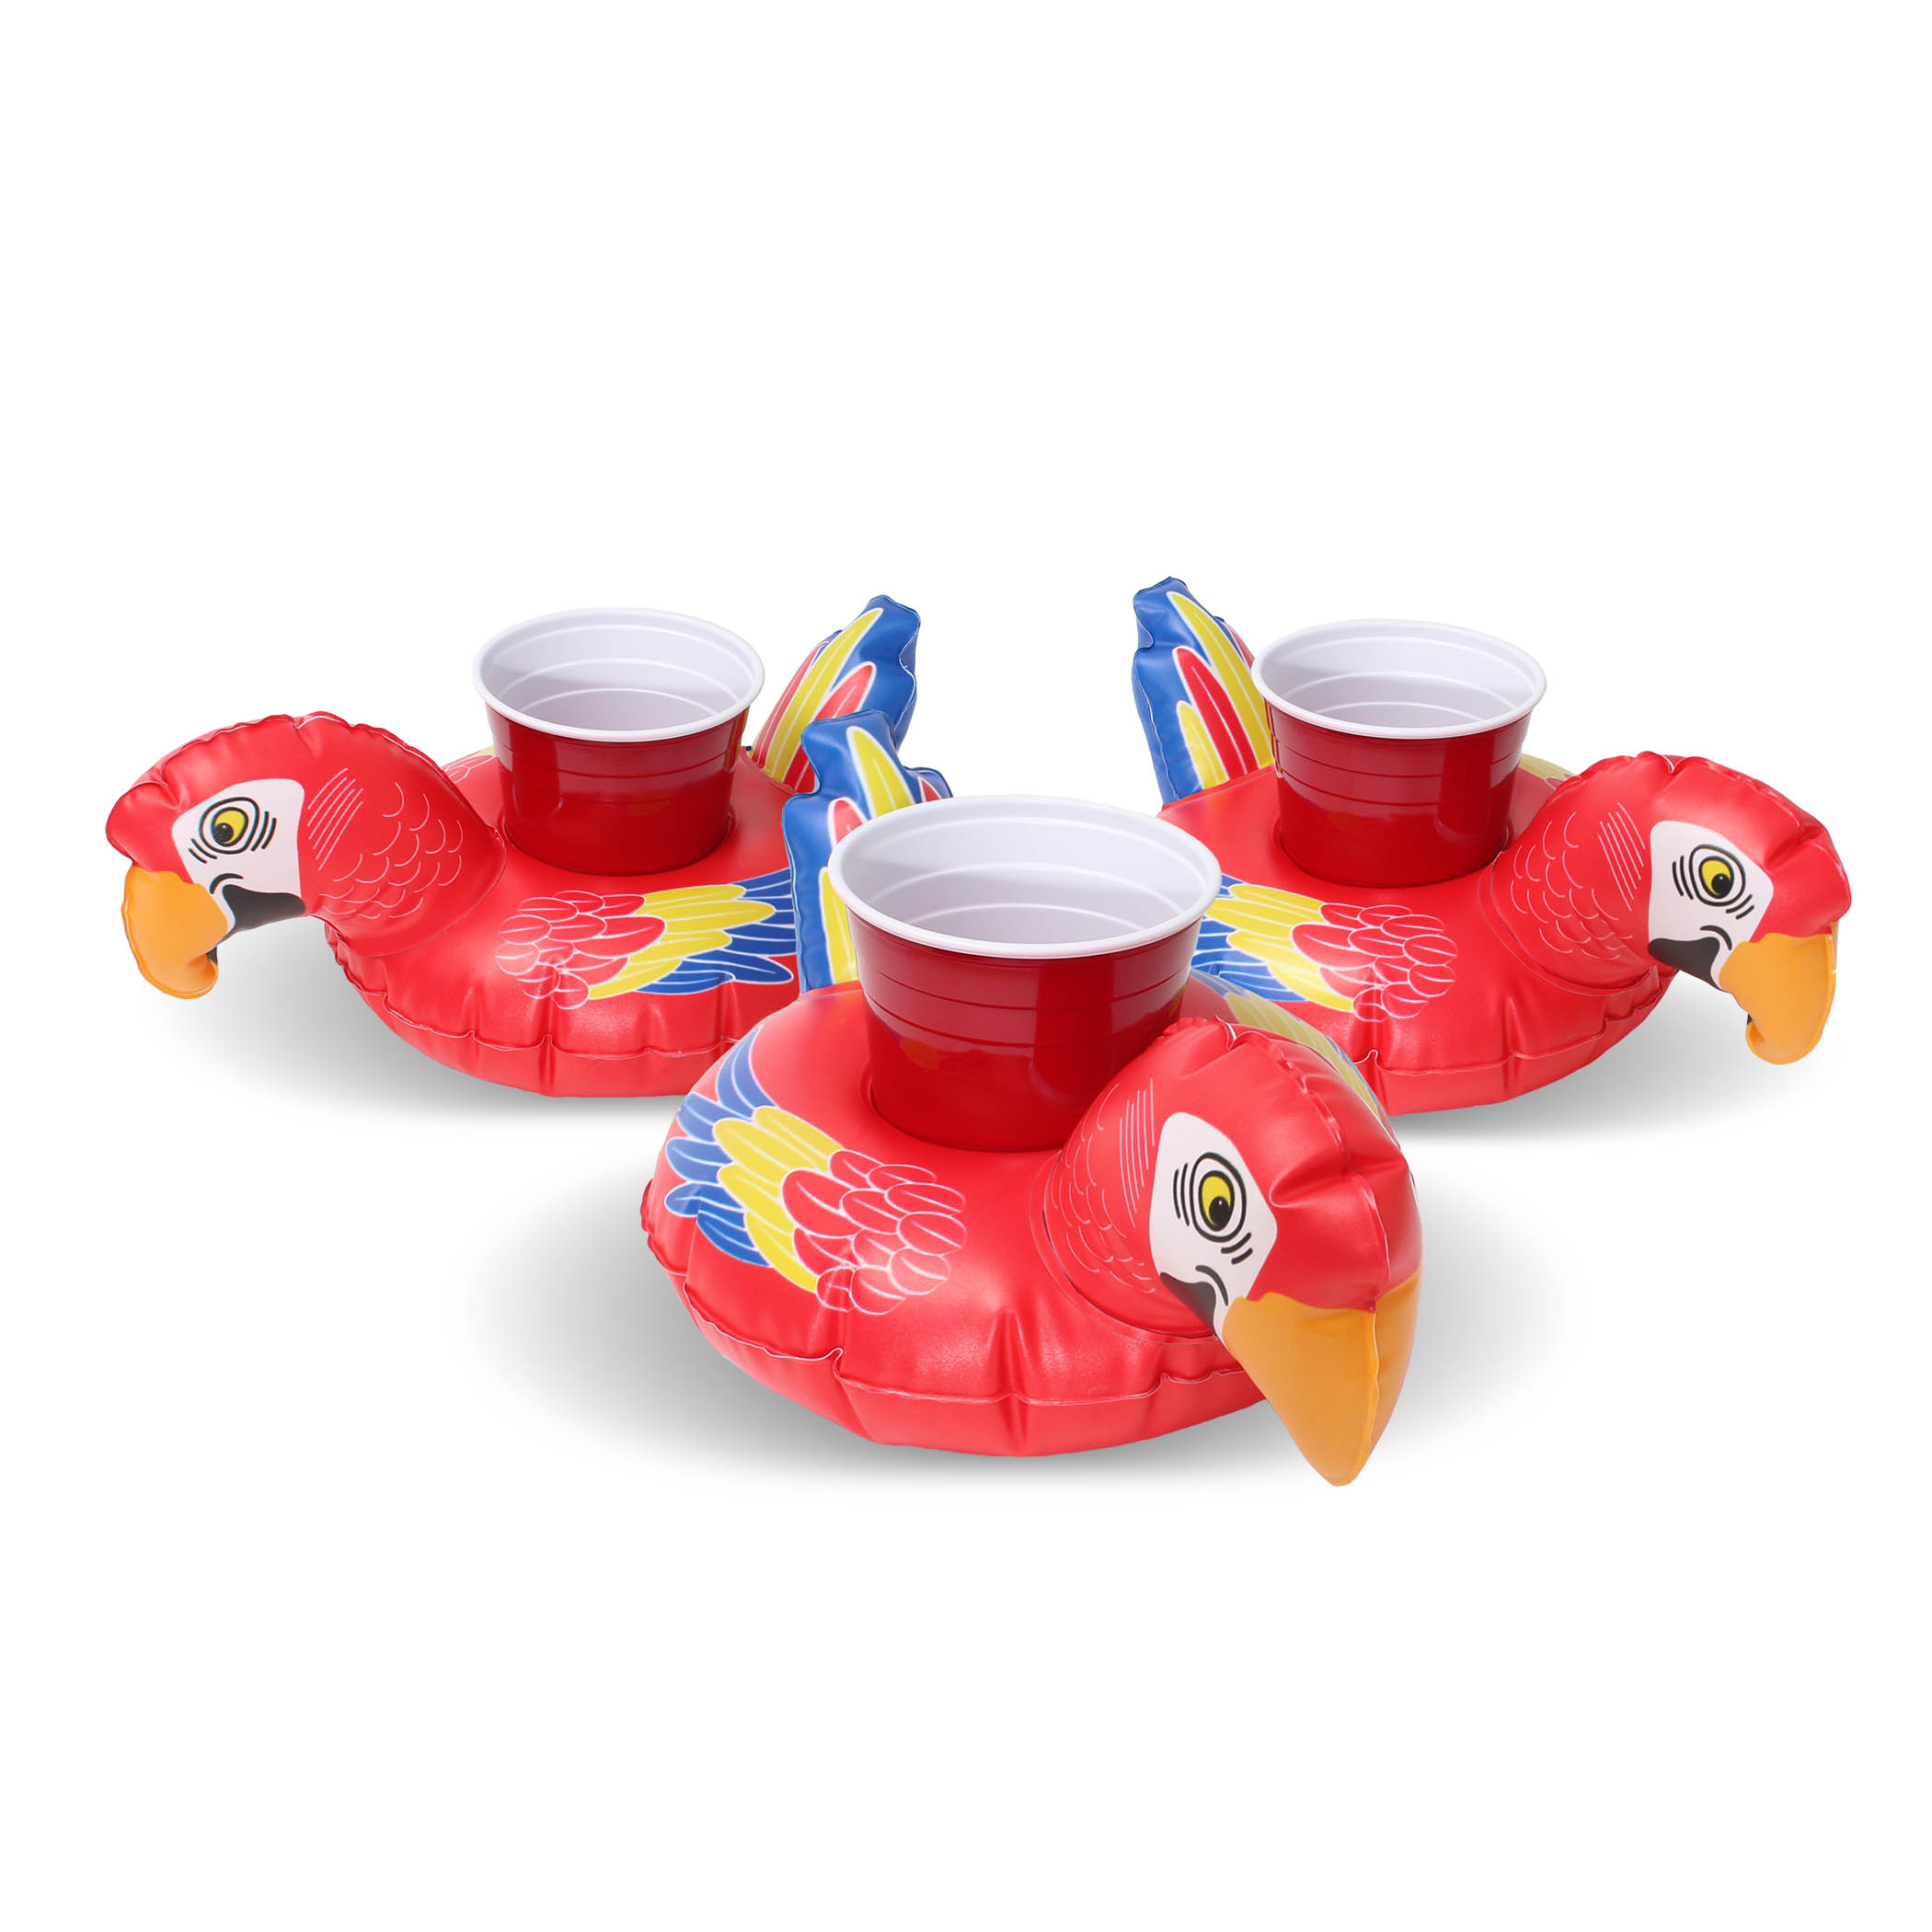 GoFloats Inflatable Party Parrot Drink Float (3 pack), Float your drinks in style